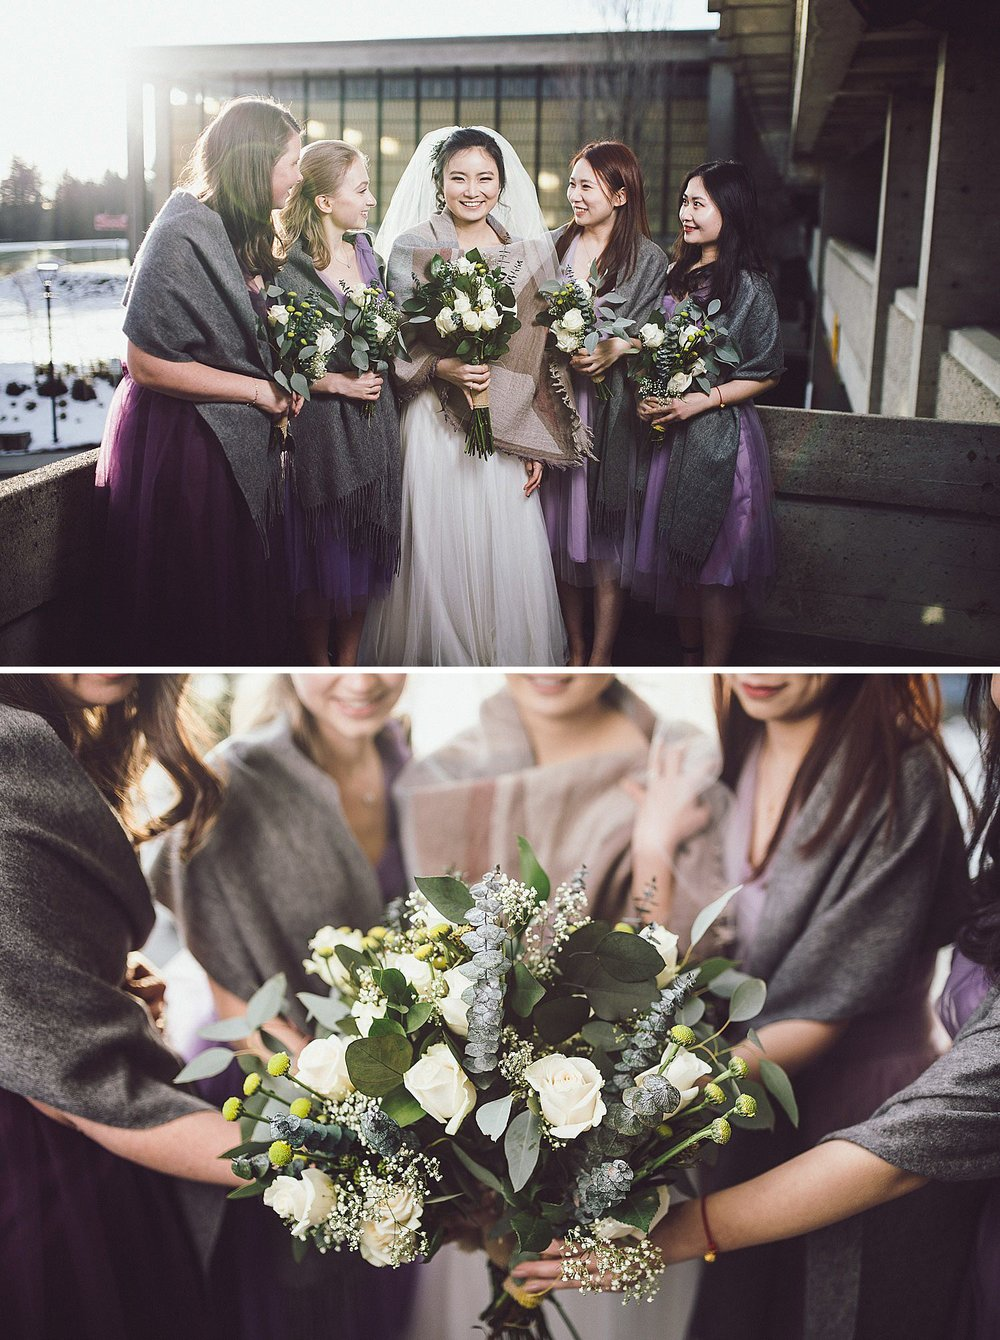 Angel and her bridesmaids